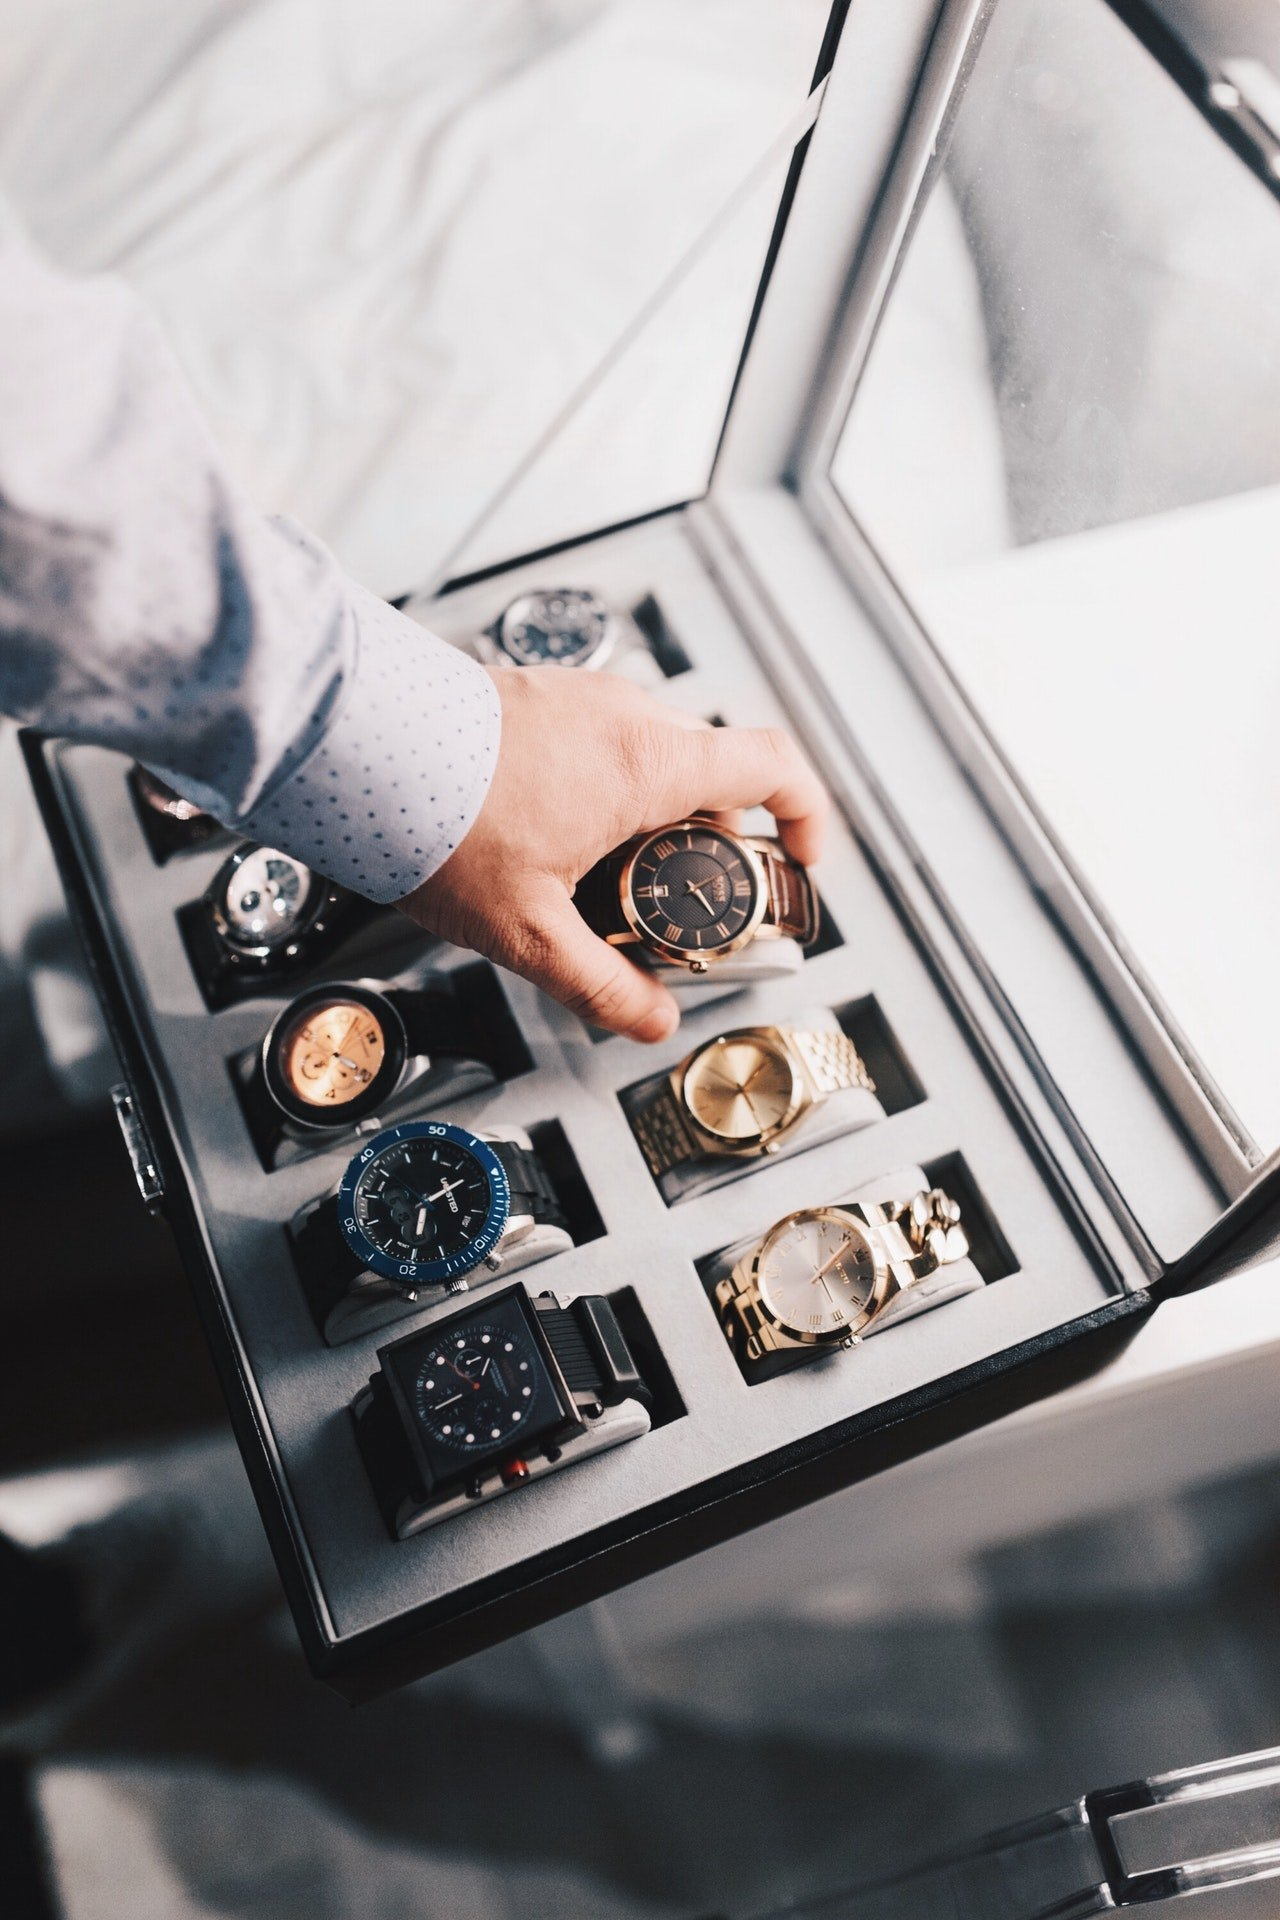 Collection of watches in a display case. | Source: Pexels